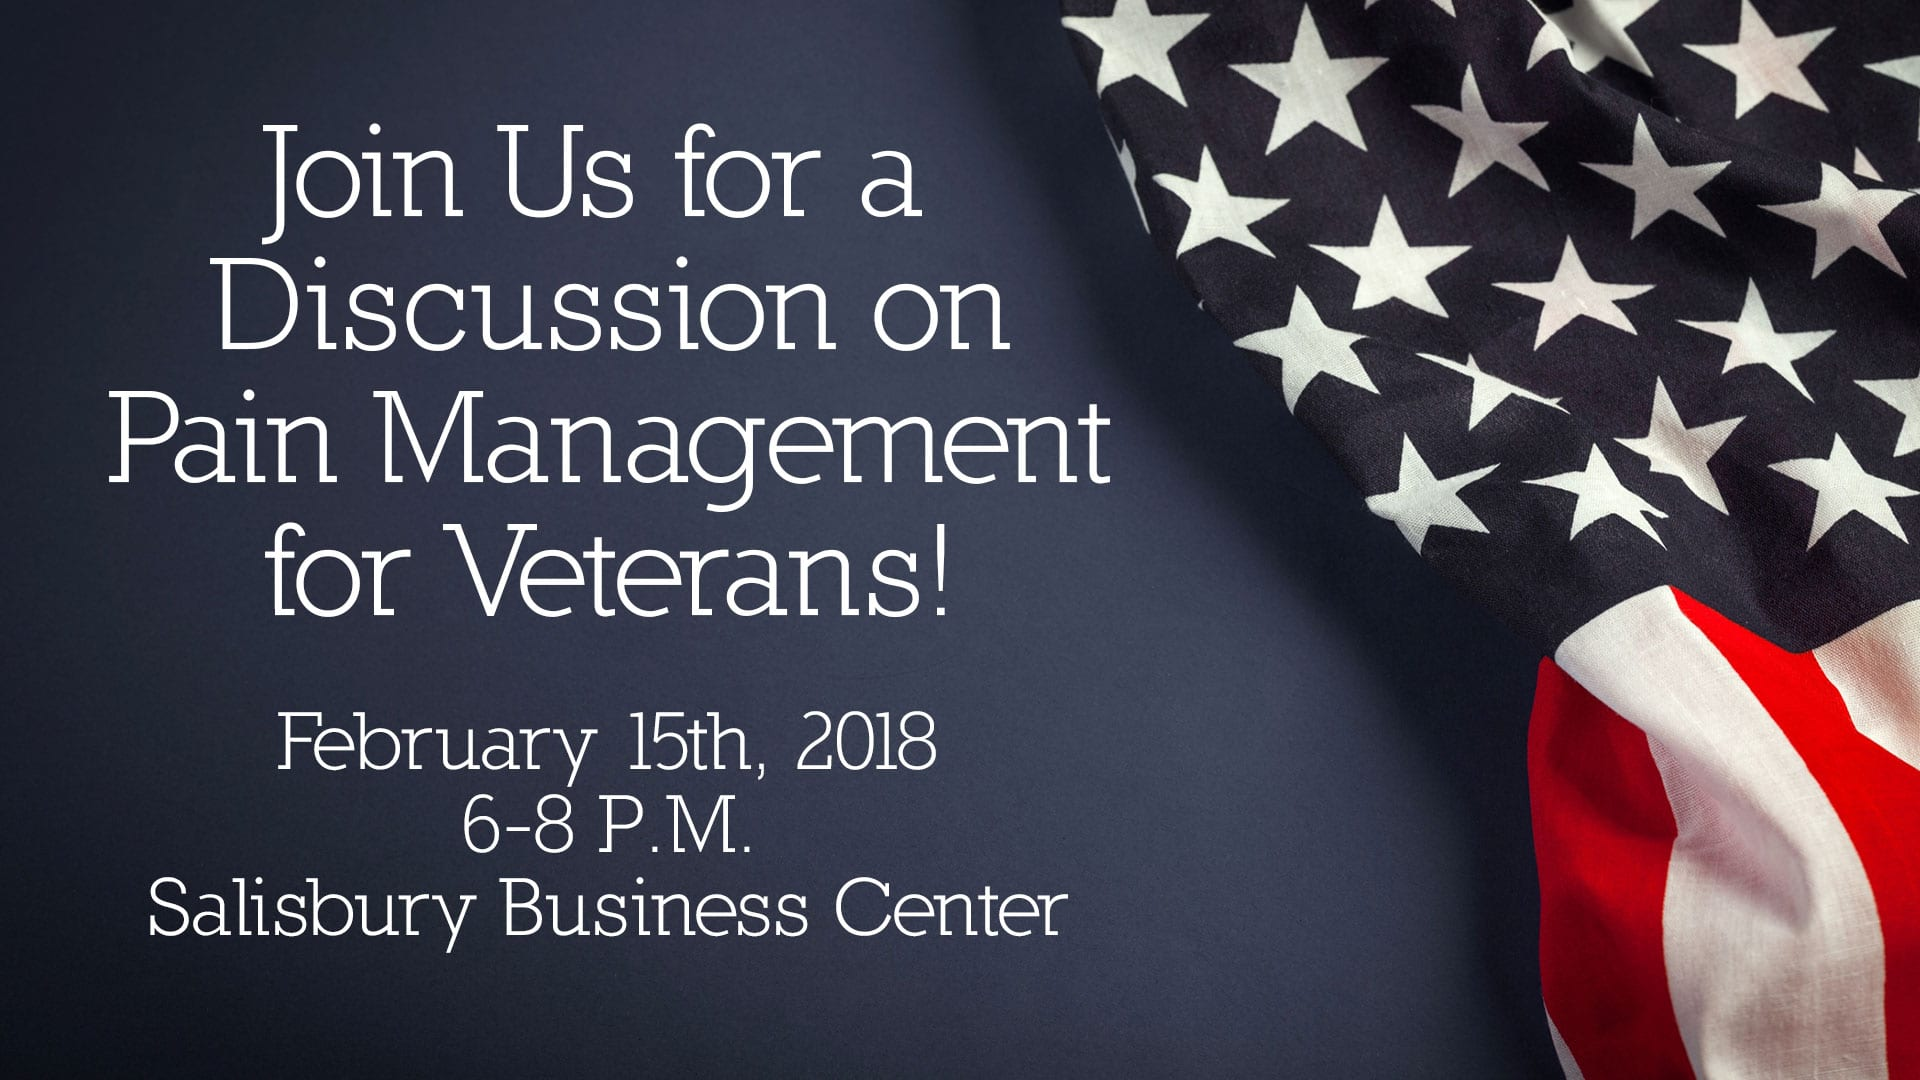 Pain Management for Veterans Event